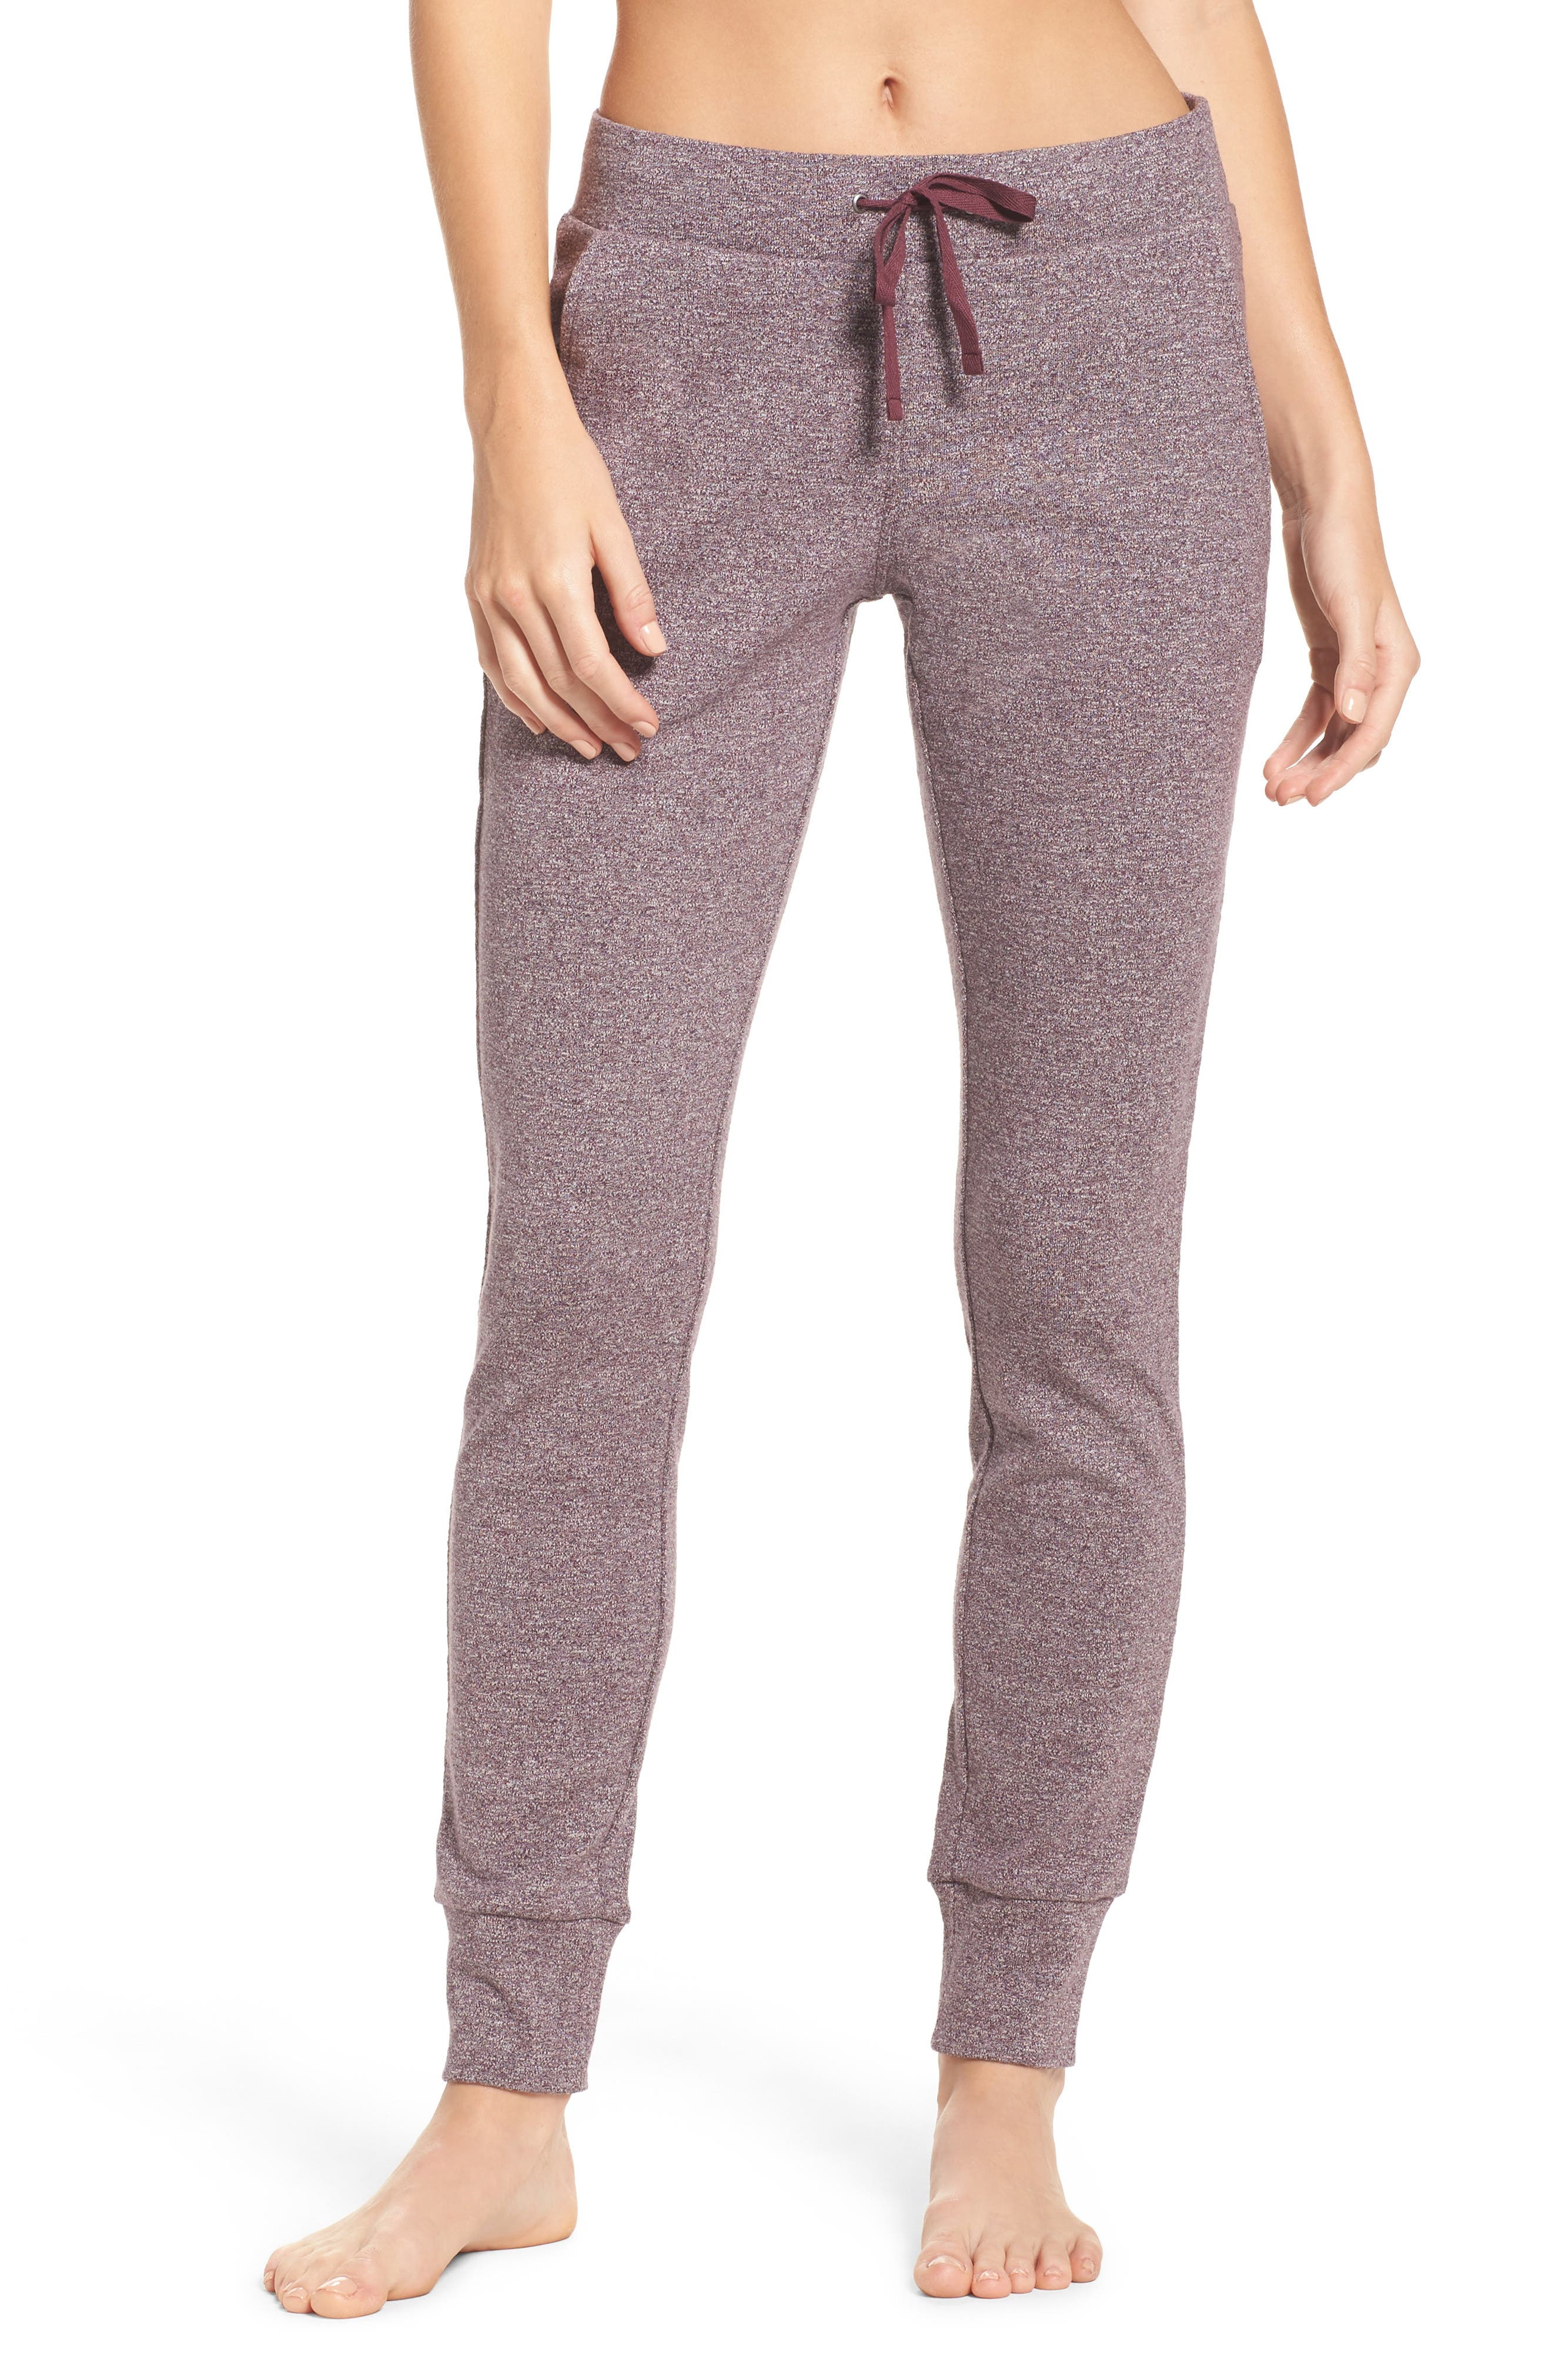 Clementine Cotton Sweatpants,                             Main thumbnail 1, color,                             Nightshade Heather